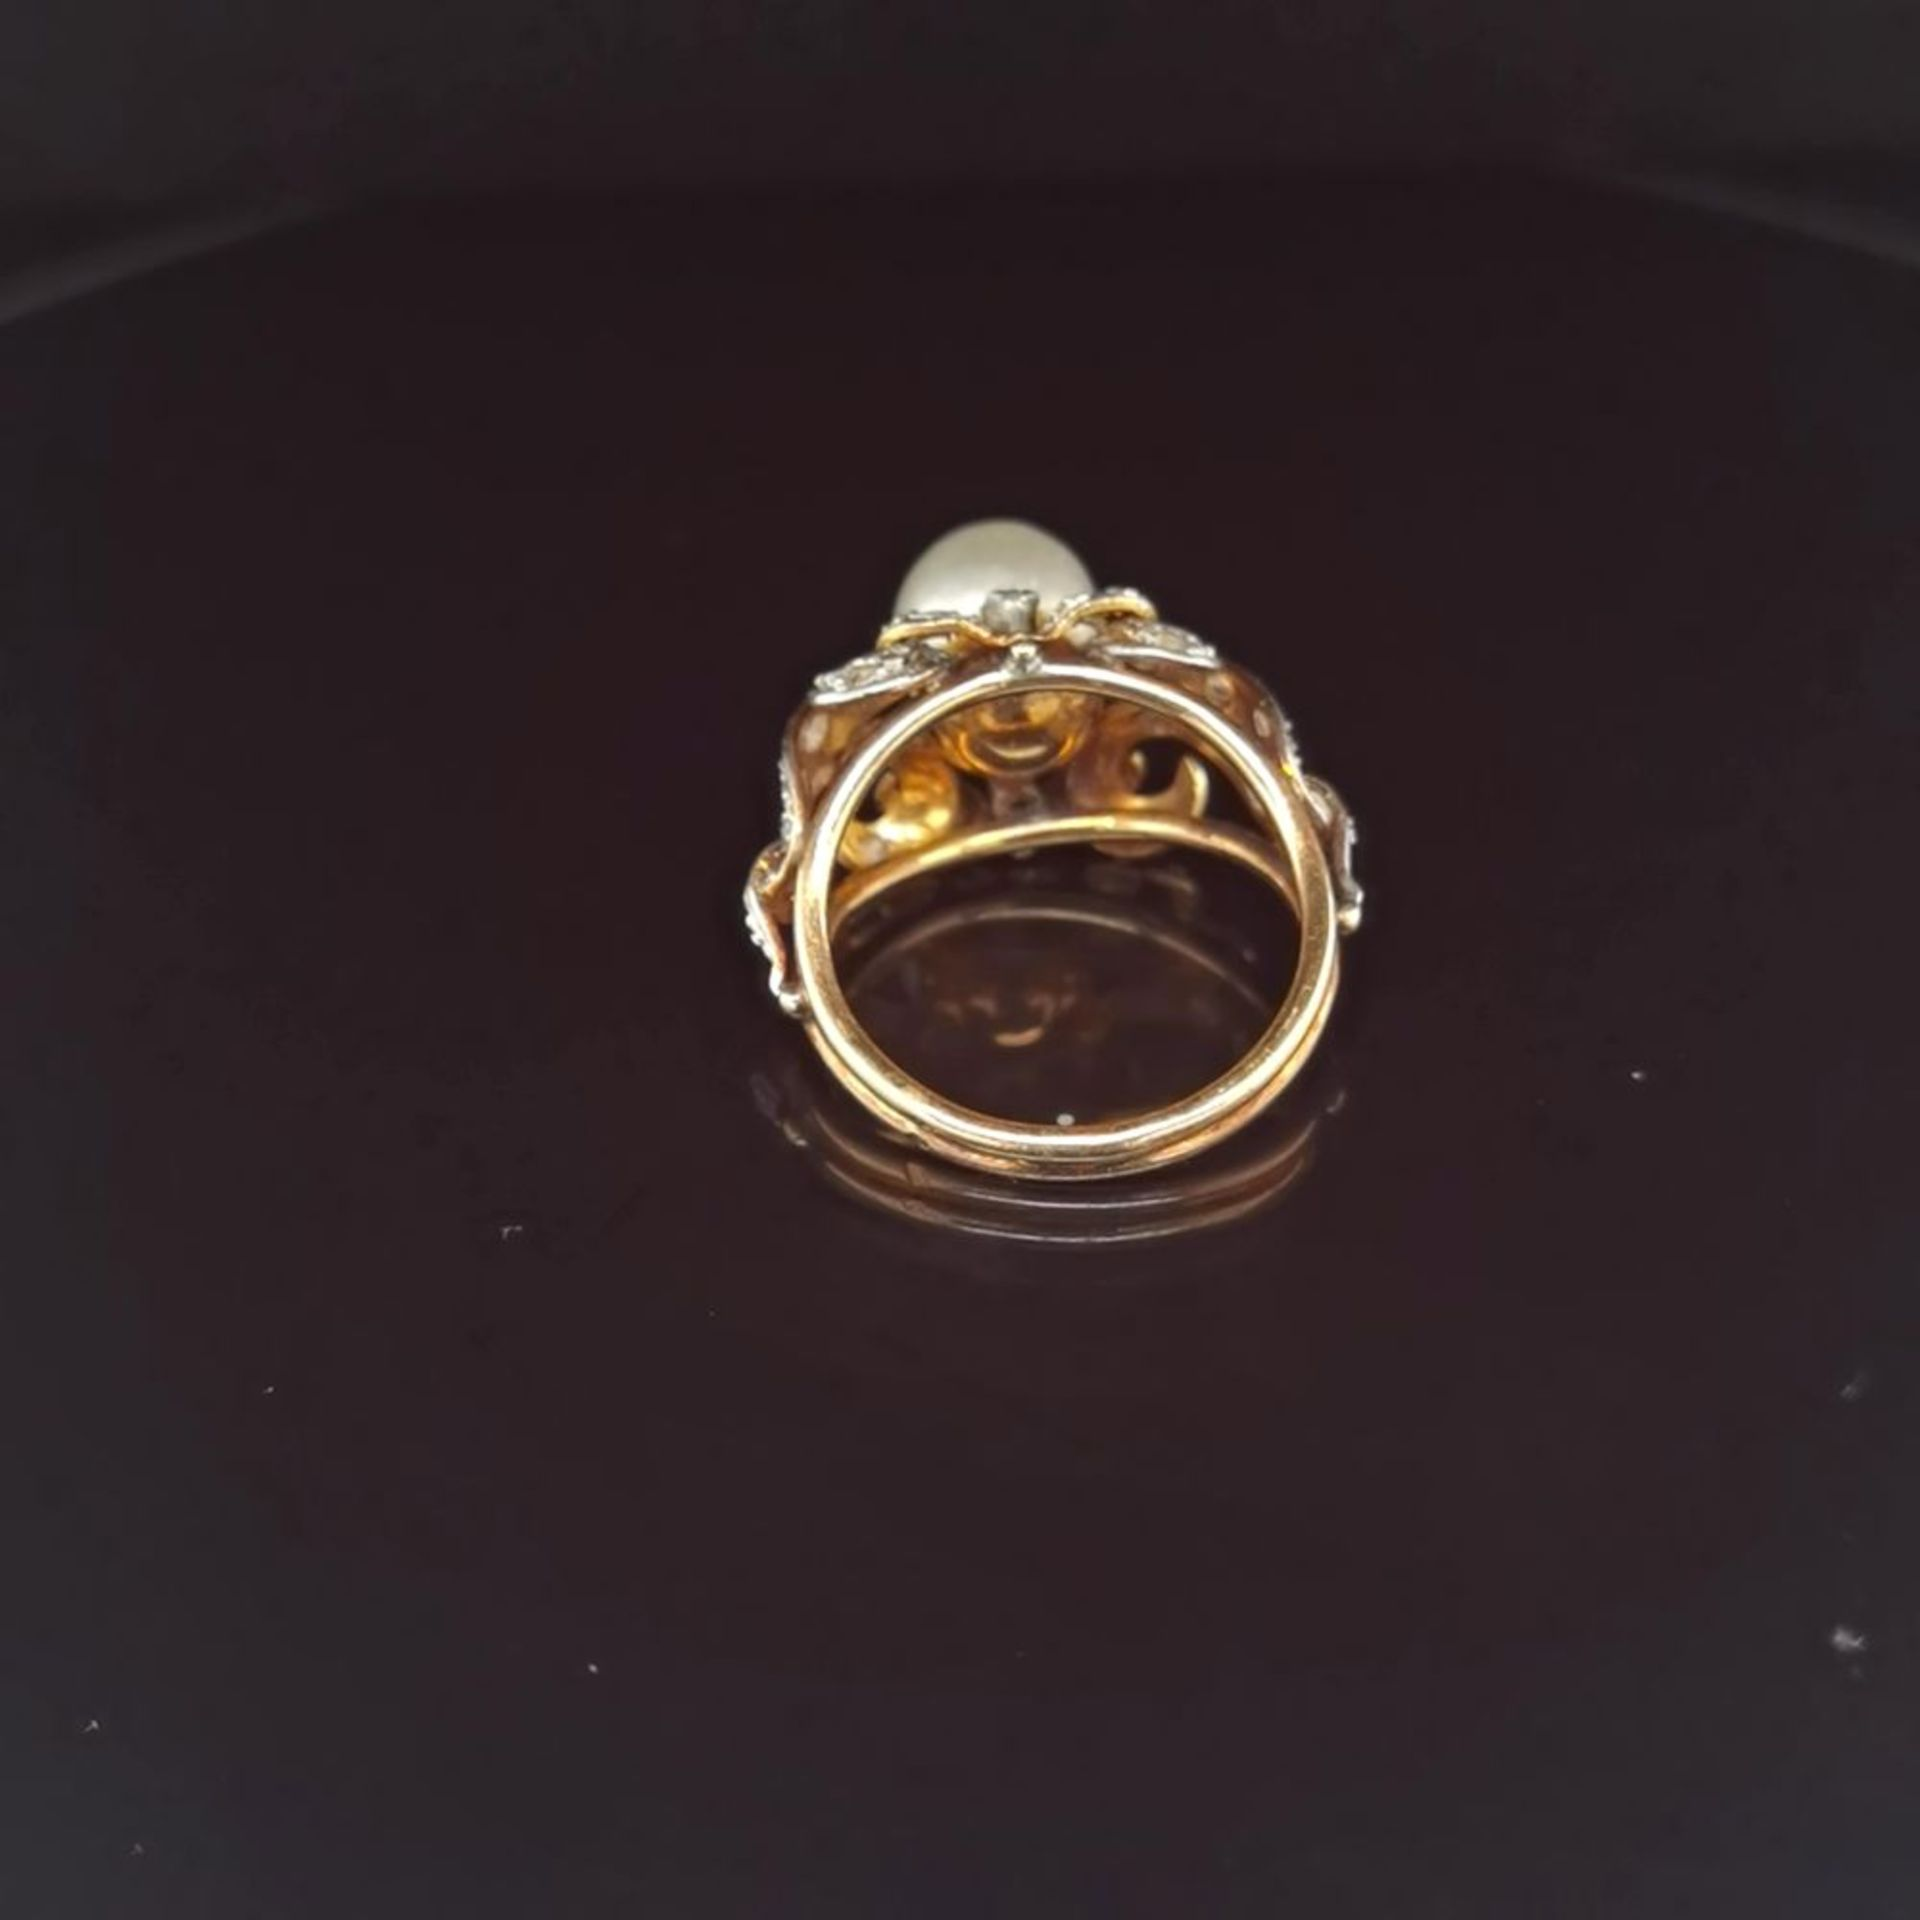 Perl-Diamant-Ring, 585 Gold 5,8 - Image 3 of 3